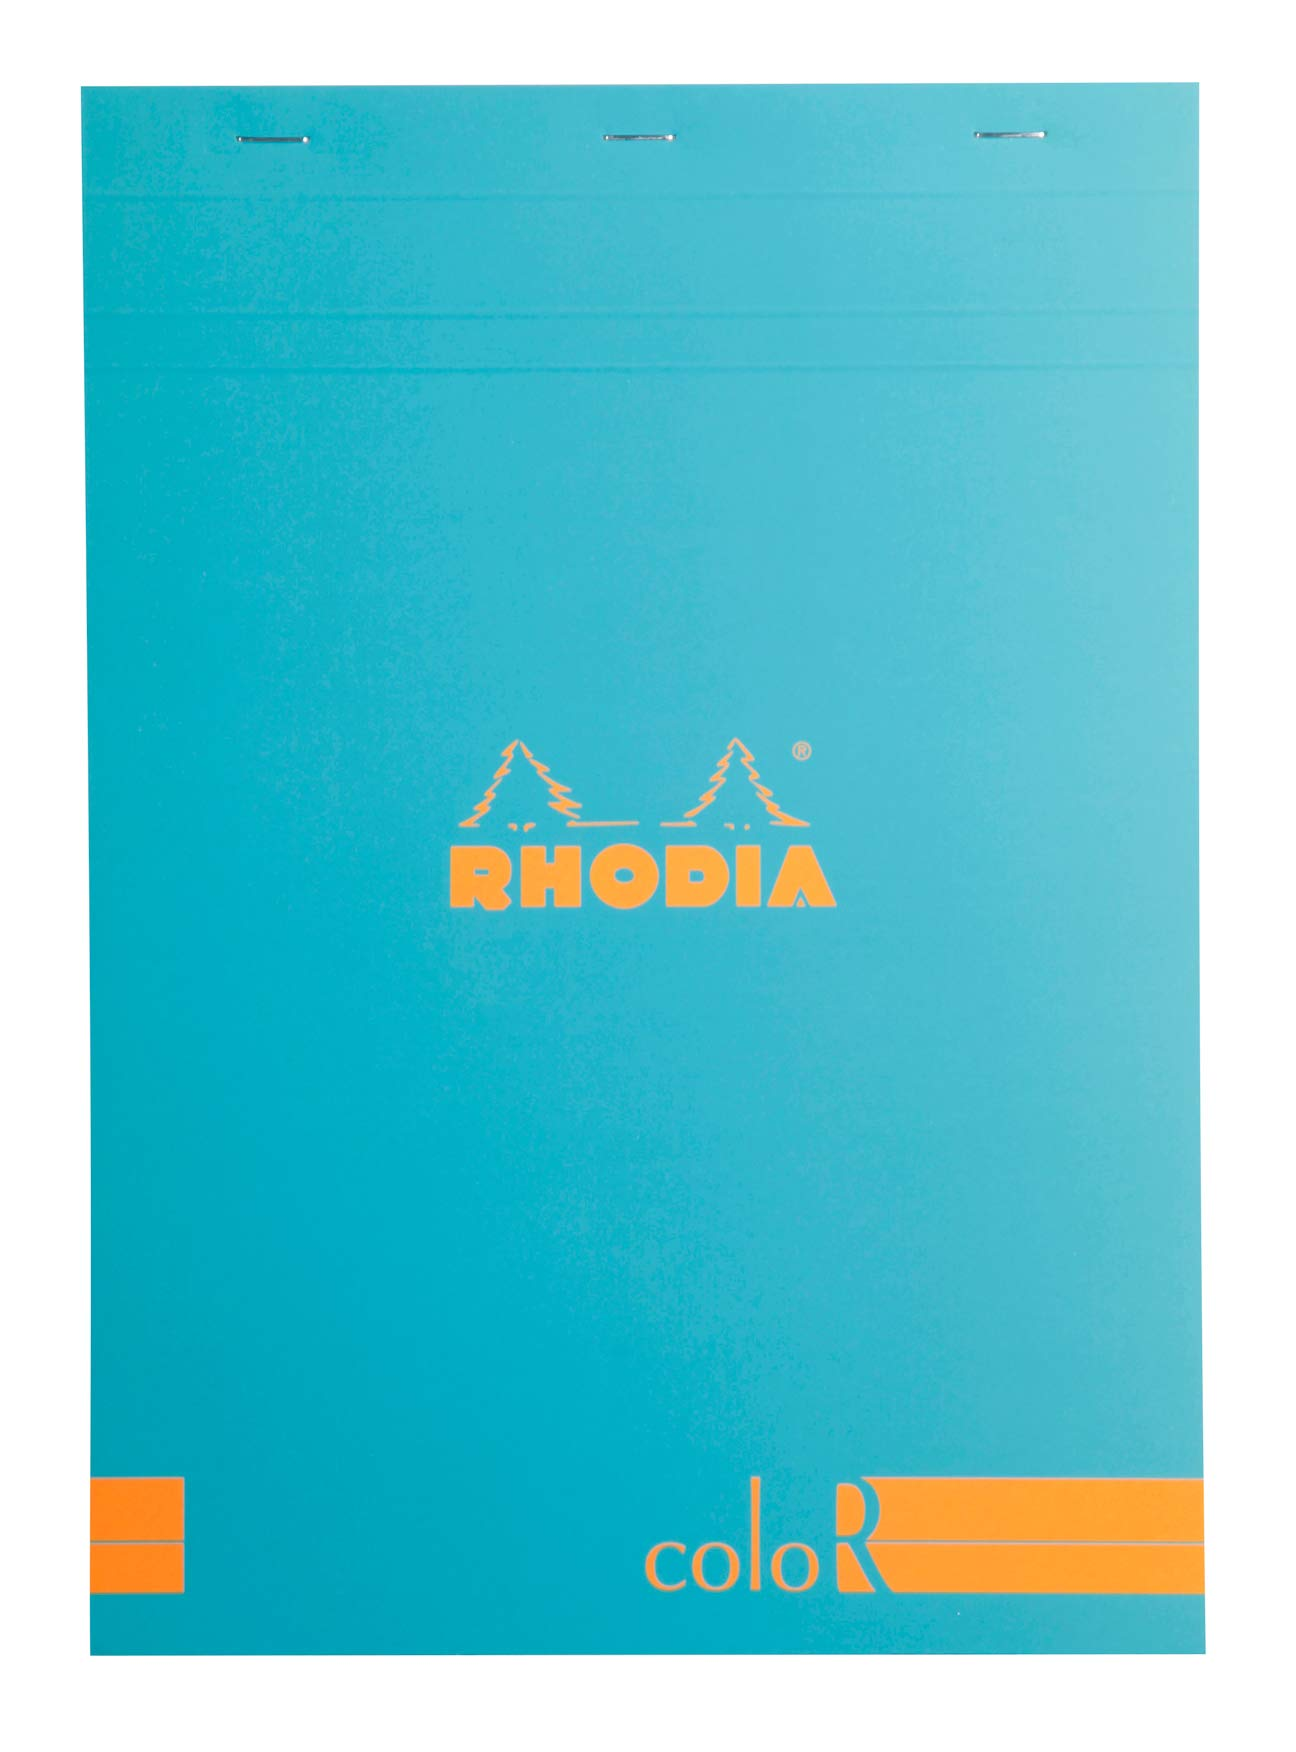 Rhodia ColoR Pad - Lined 70 sheets - 8 1/4 x 11 3/4 - Anise Cover by Rhodia